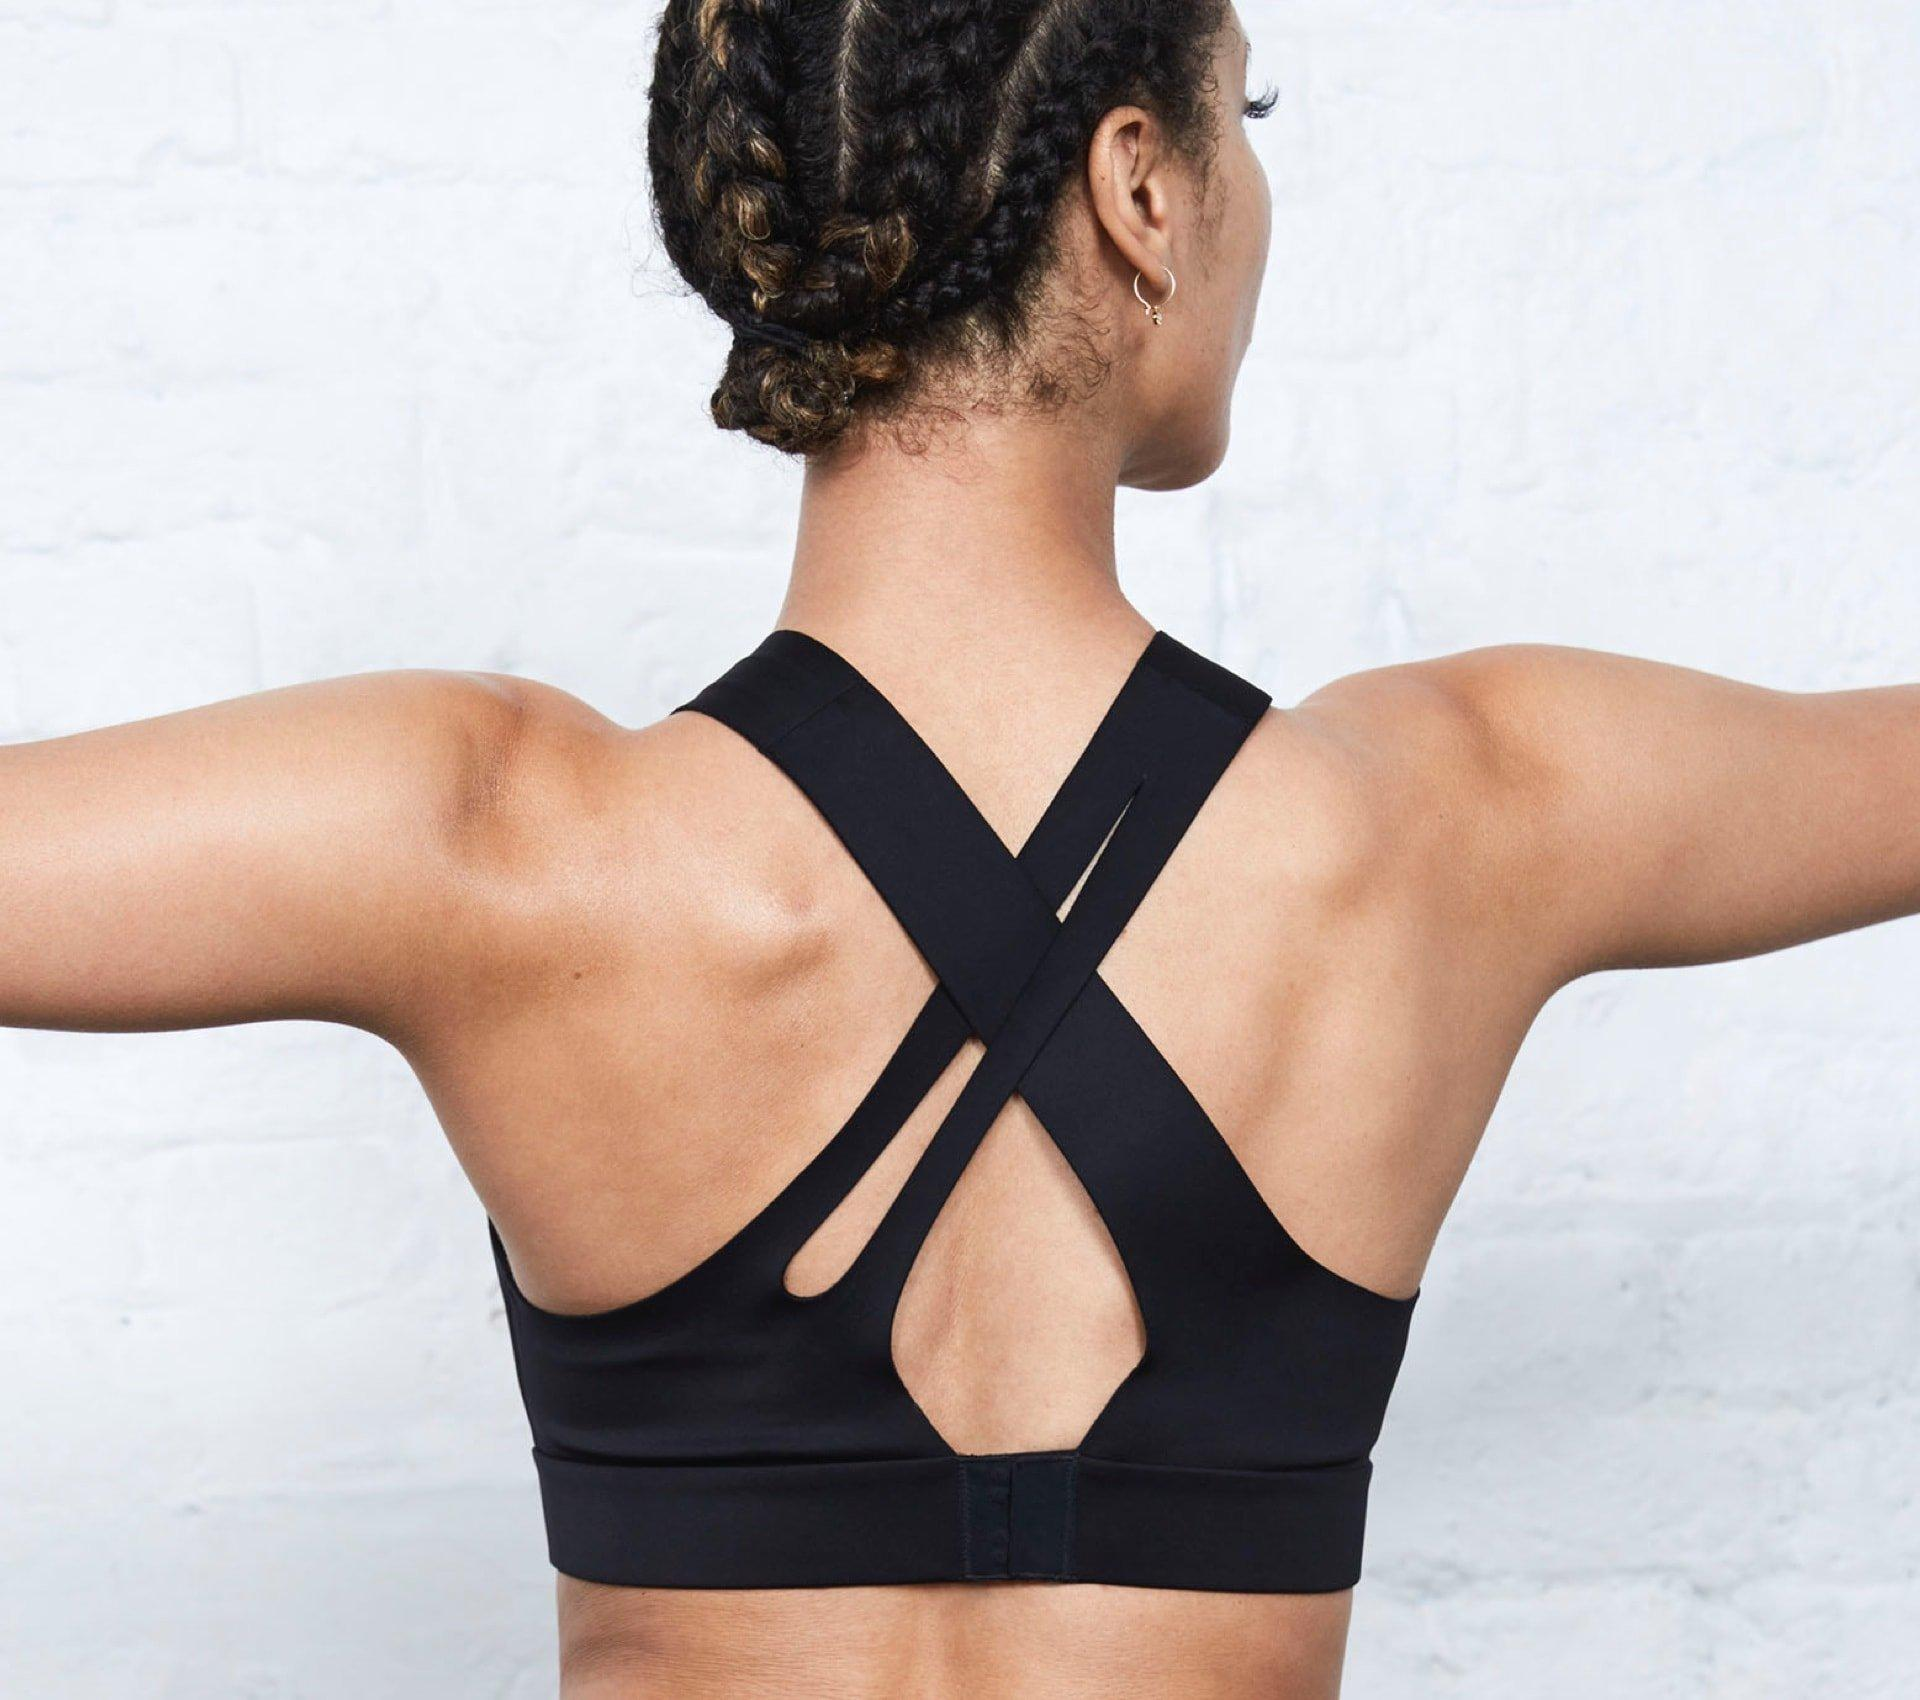 Find The Perfect Sports Bra